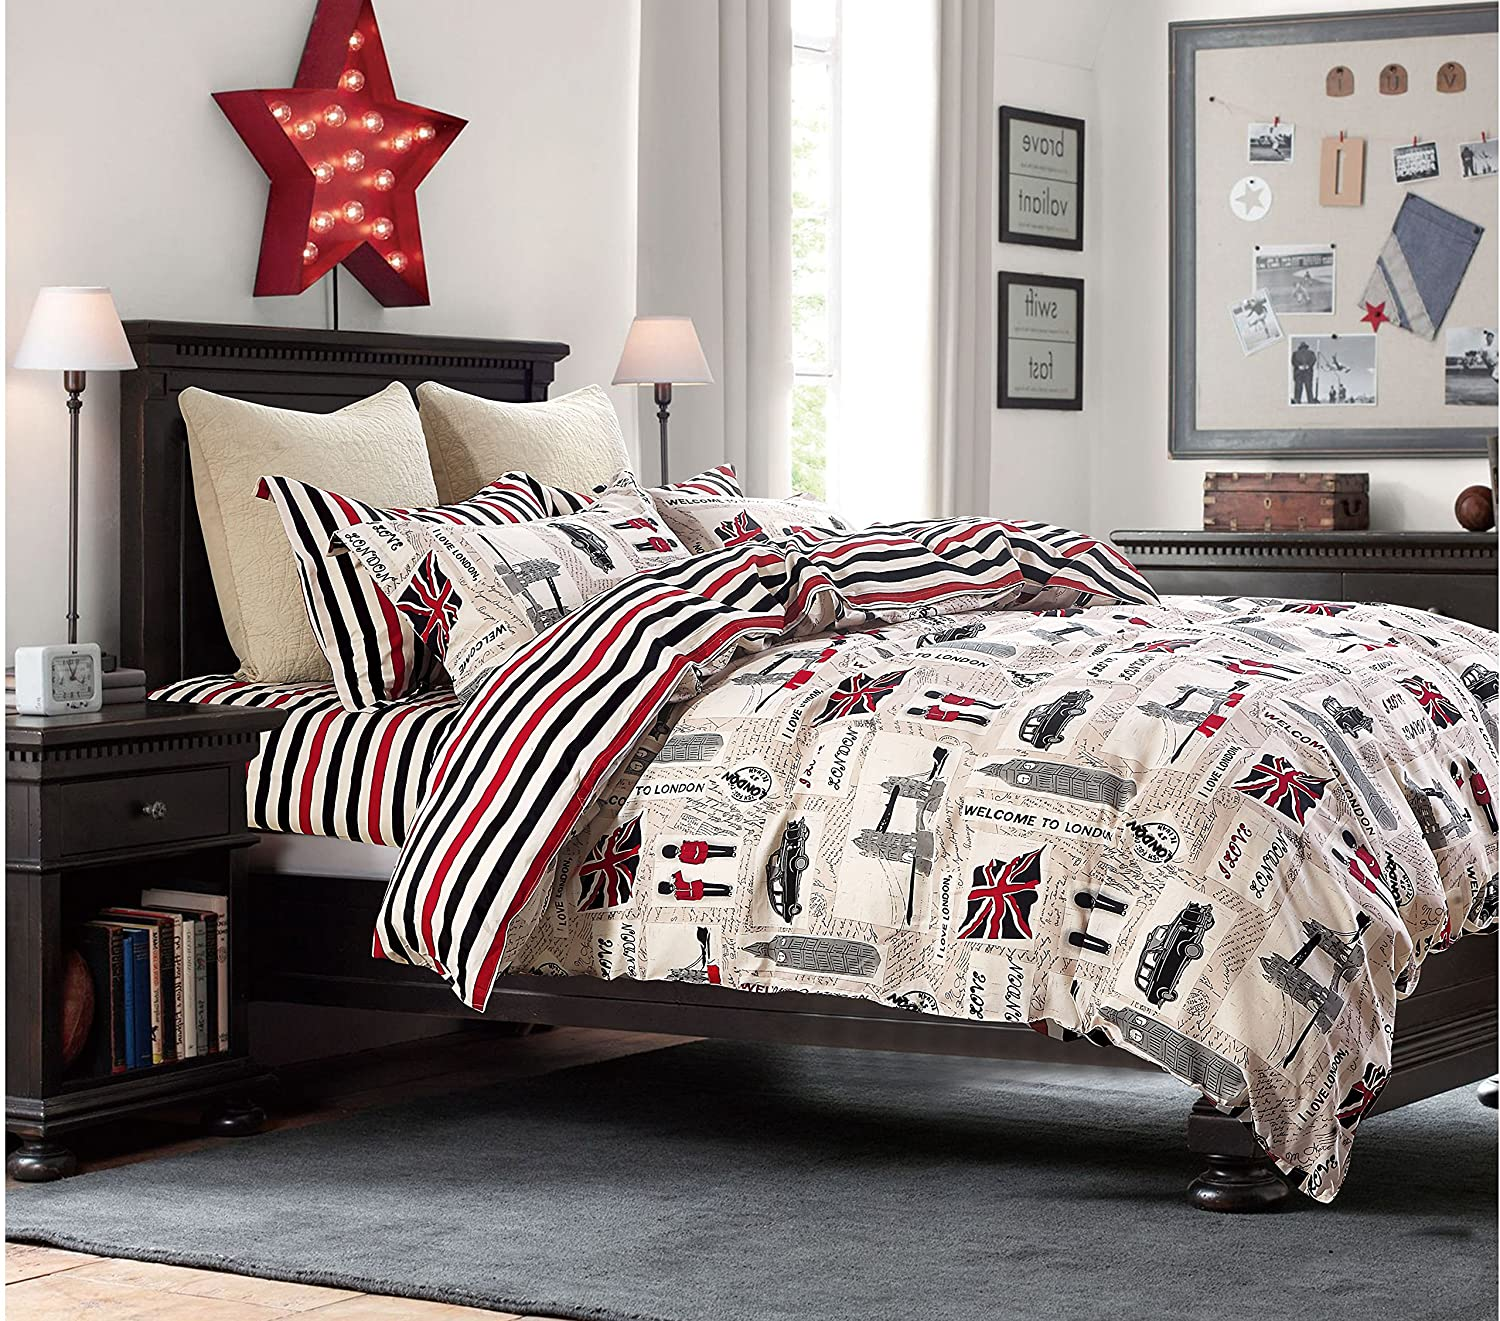 will bed queen full fit sets comforters comforter set walmart size with a cheap cover